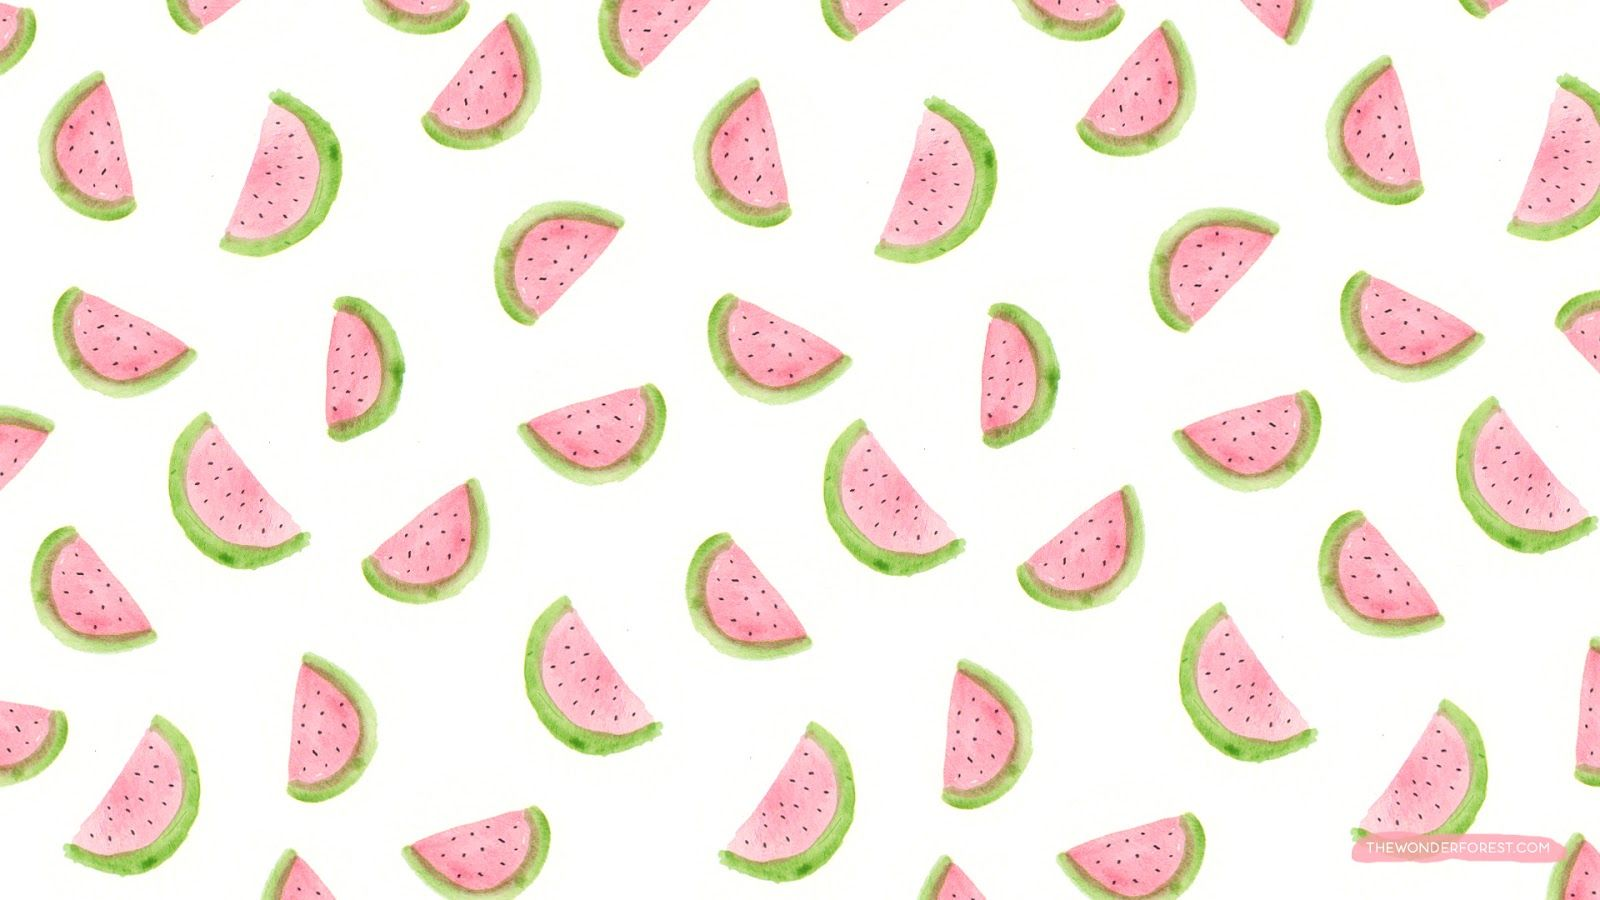 tumblr backgrounds watermelon background - photo #34